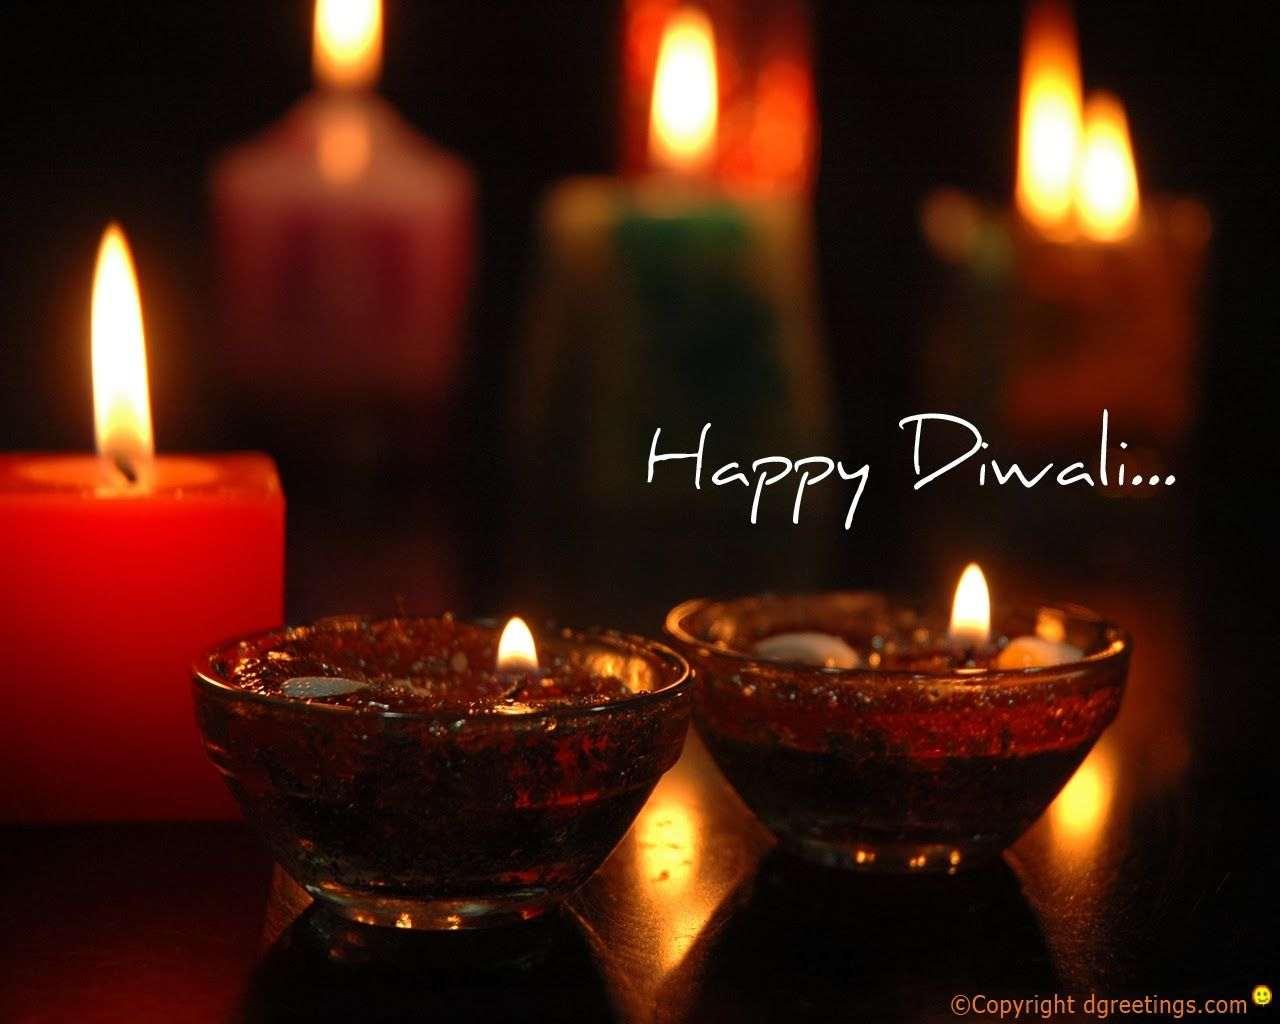 Happy diwali from lawangi happy diwali pinterest happy free diwali ecardsfree diwali greeting cardshappy diwali cards diwali wallpapersall information about are available in this site kristyandbryce Gallery